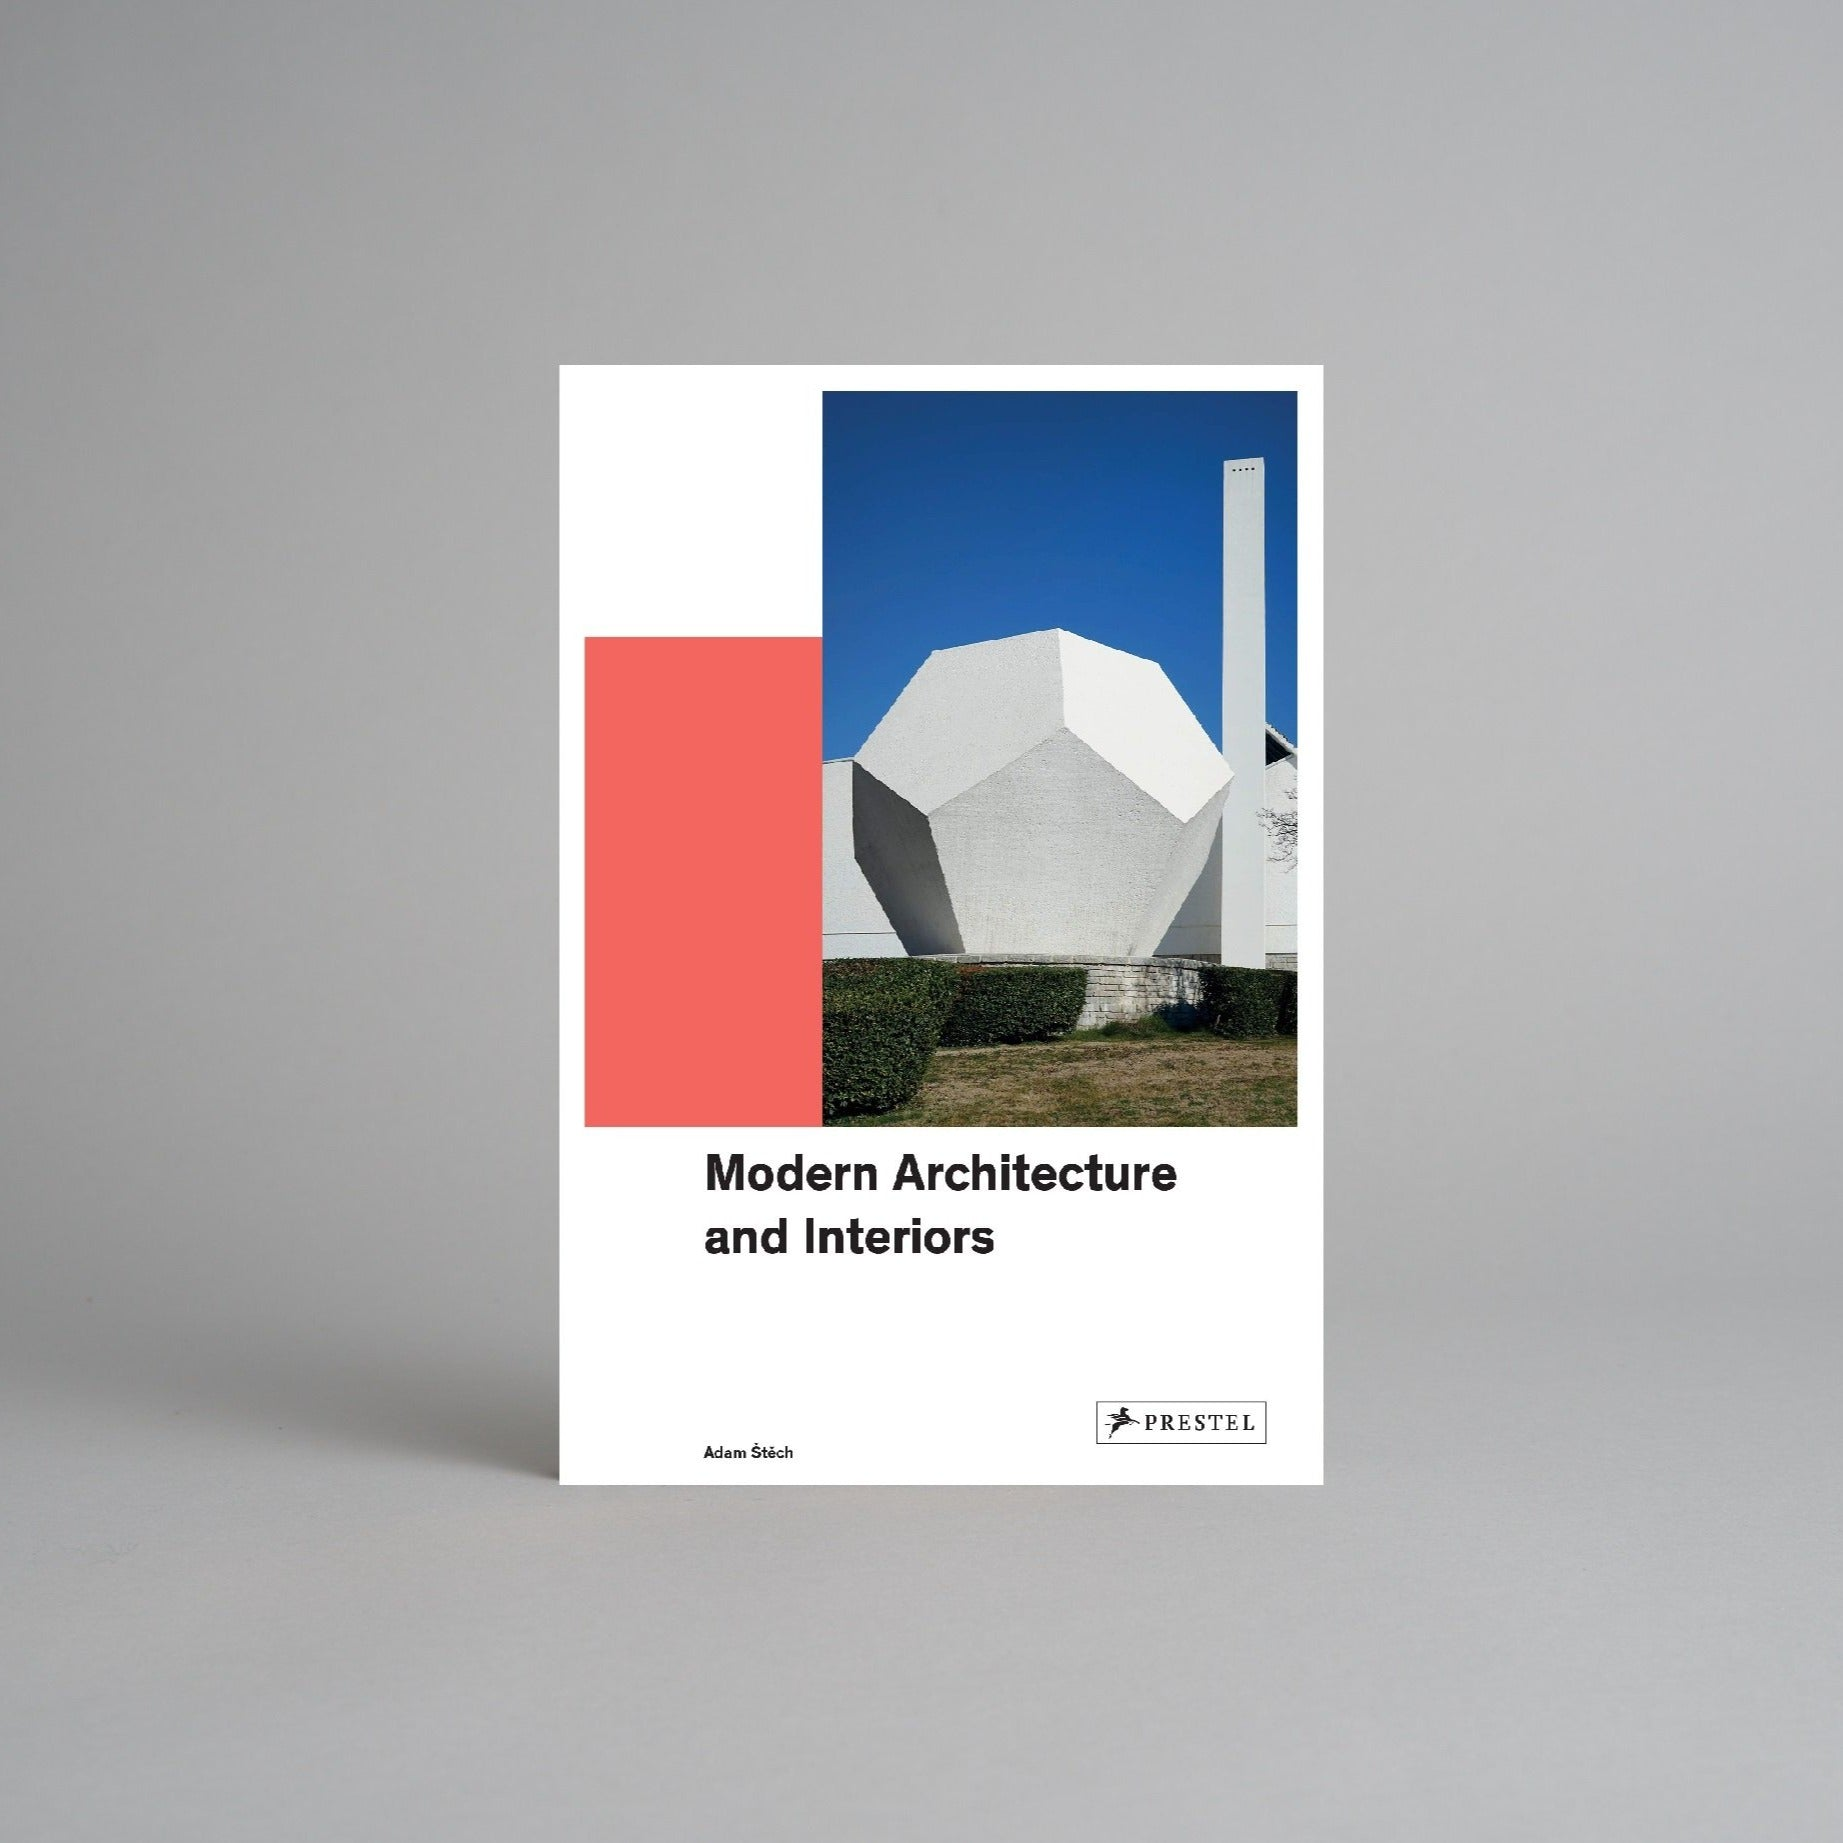 Modernist Buildings and Interiors by Adam Stech